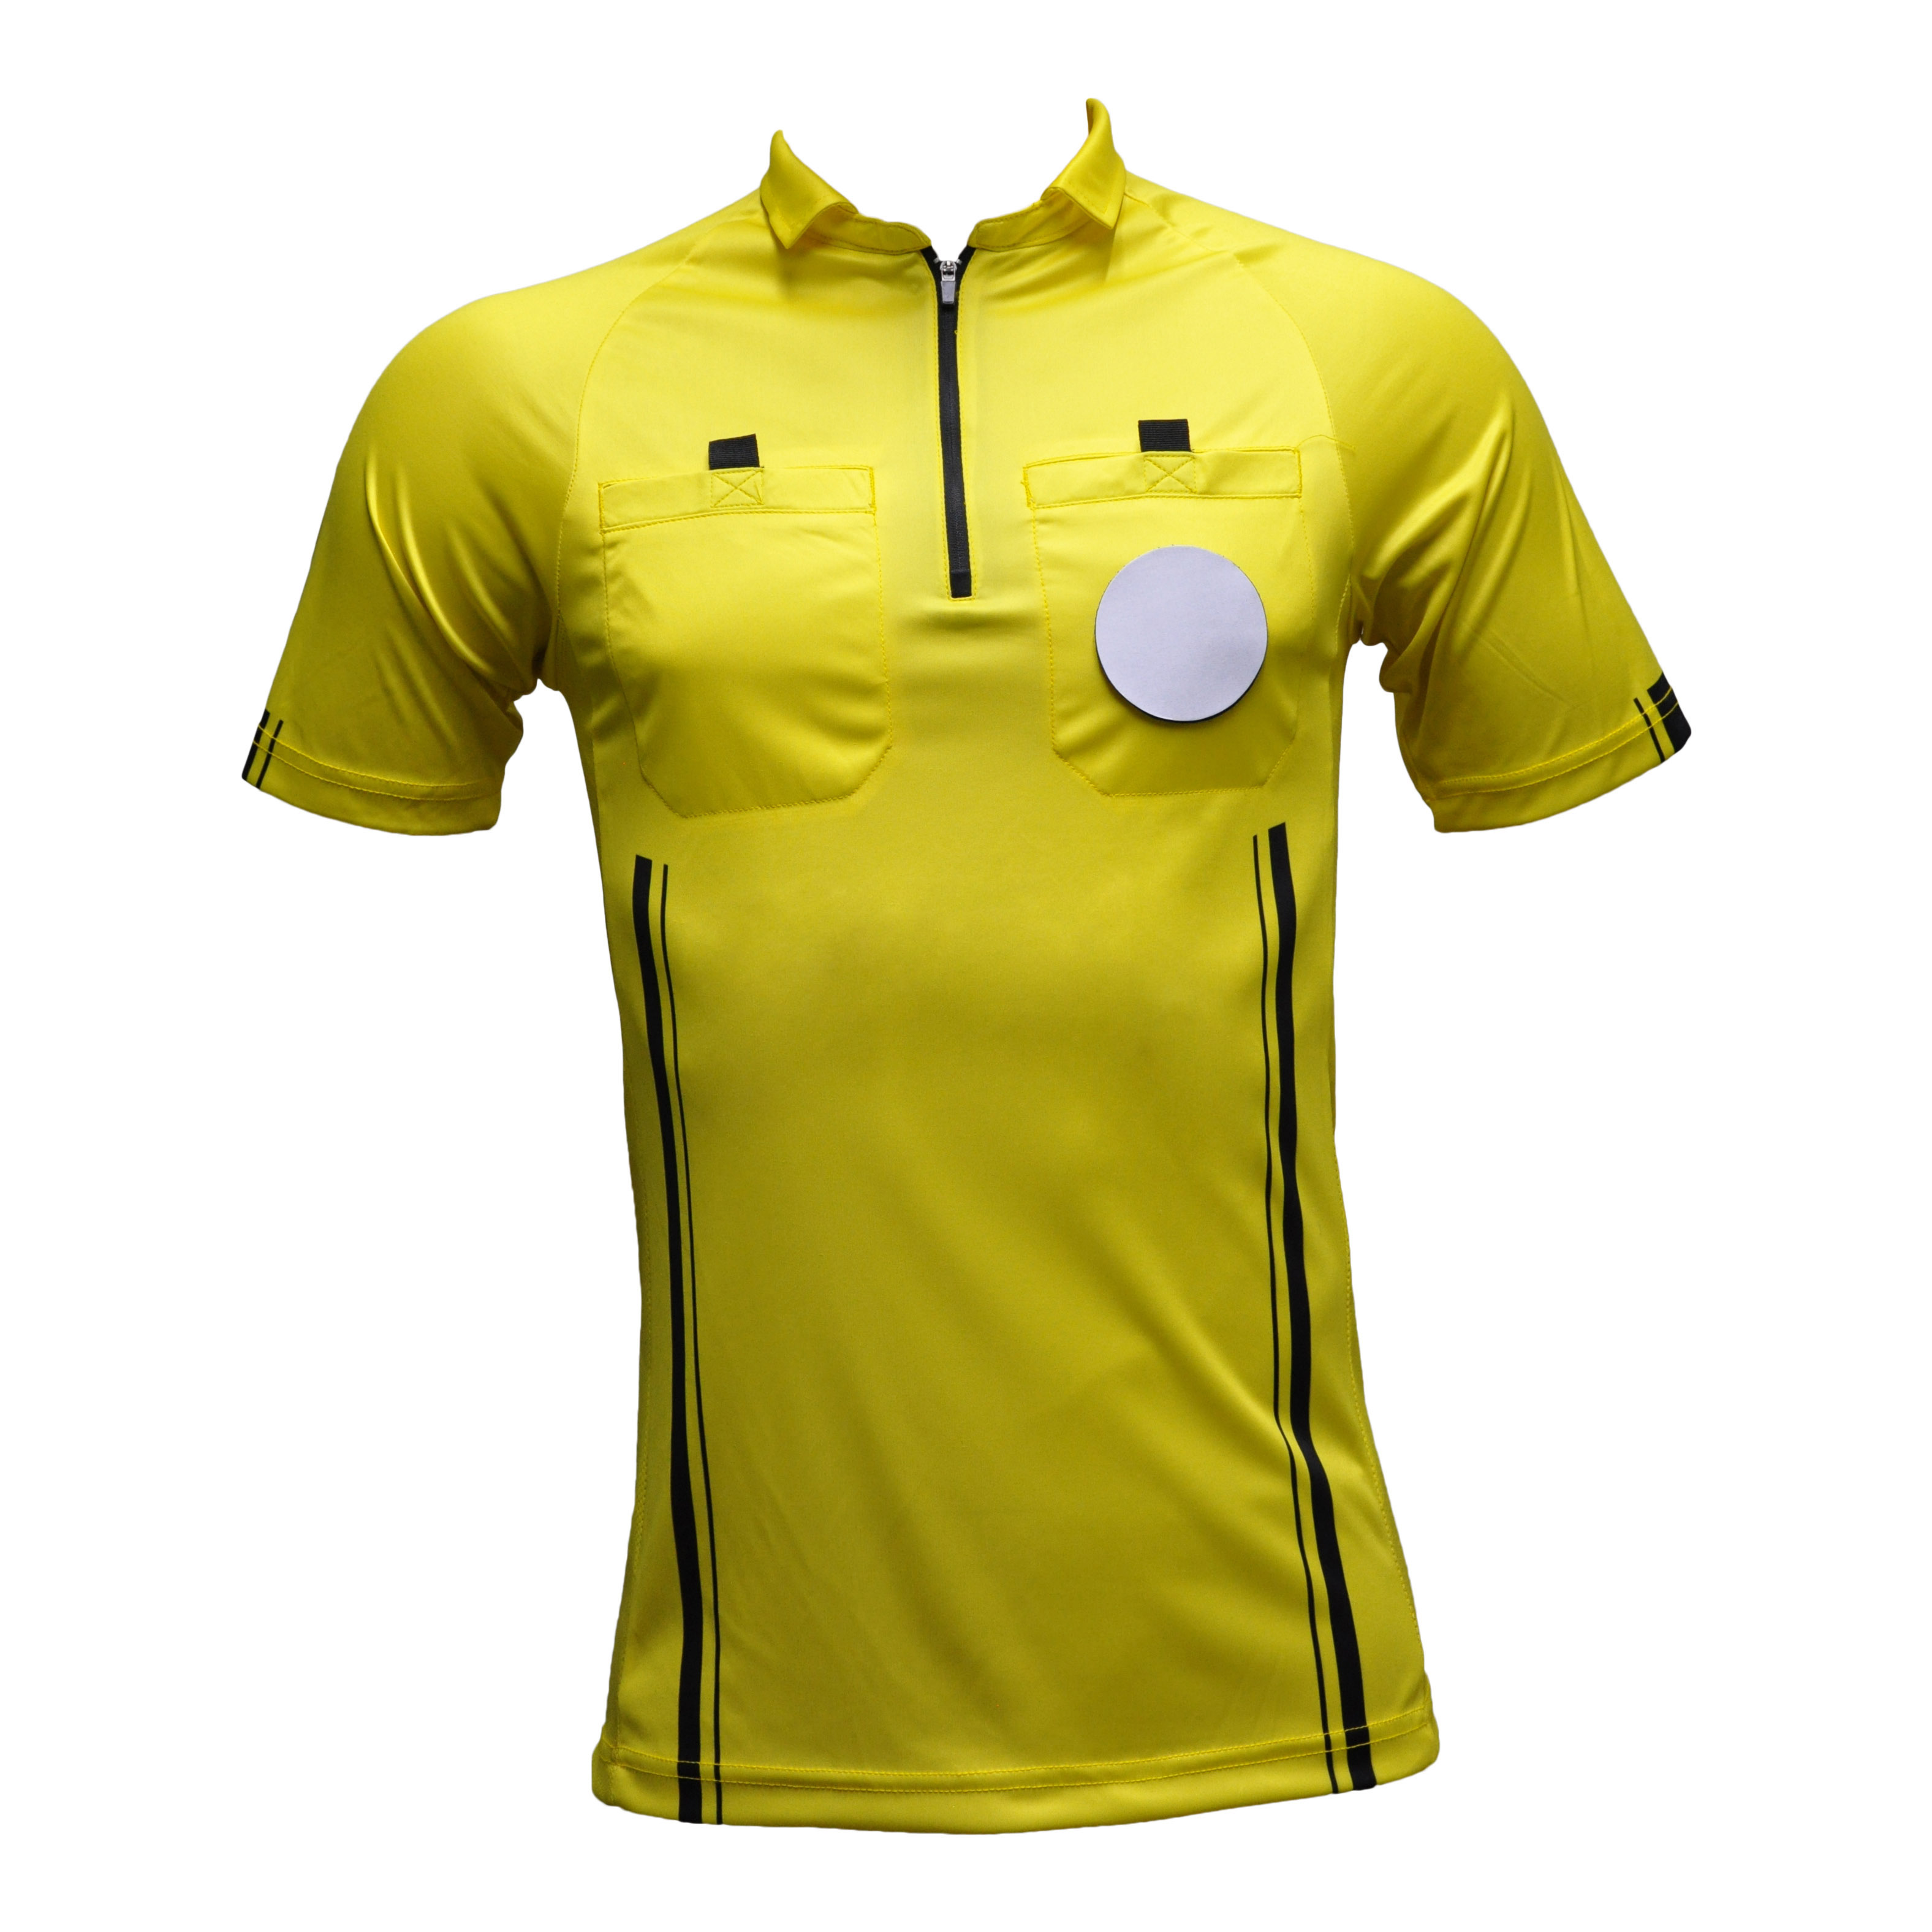 b0df214c3ab Referee Apparel Archives - Soccer Wholesale